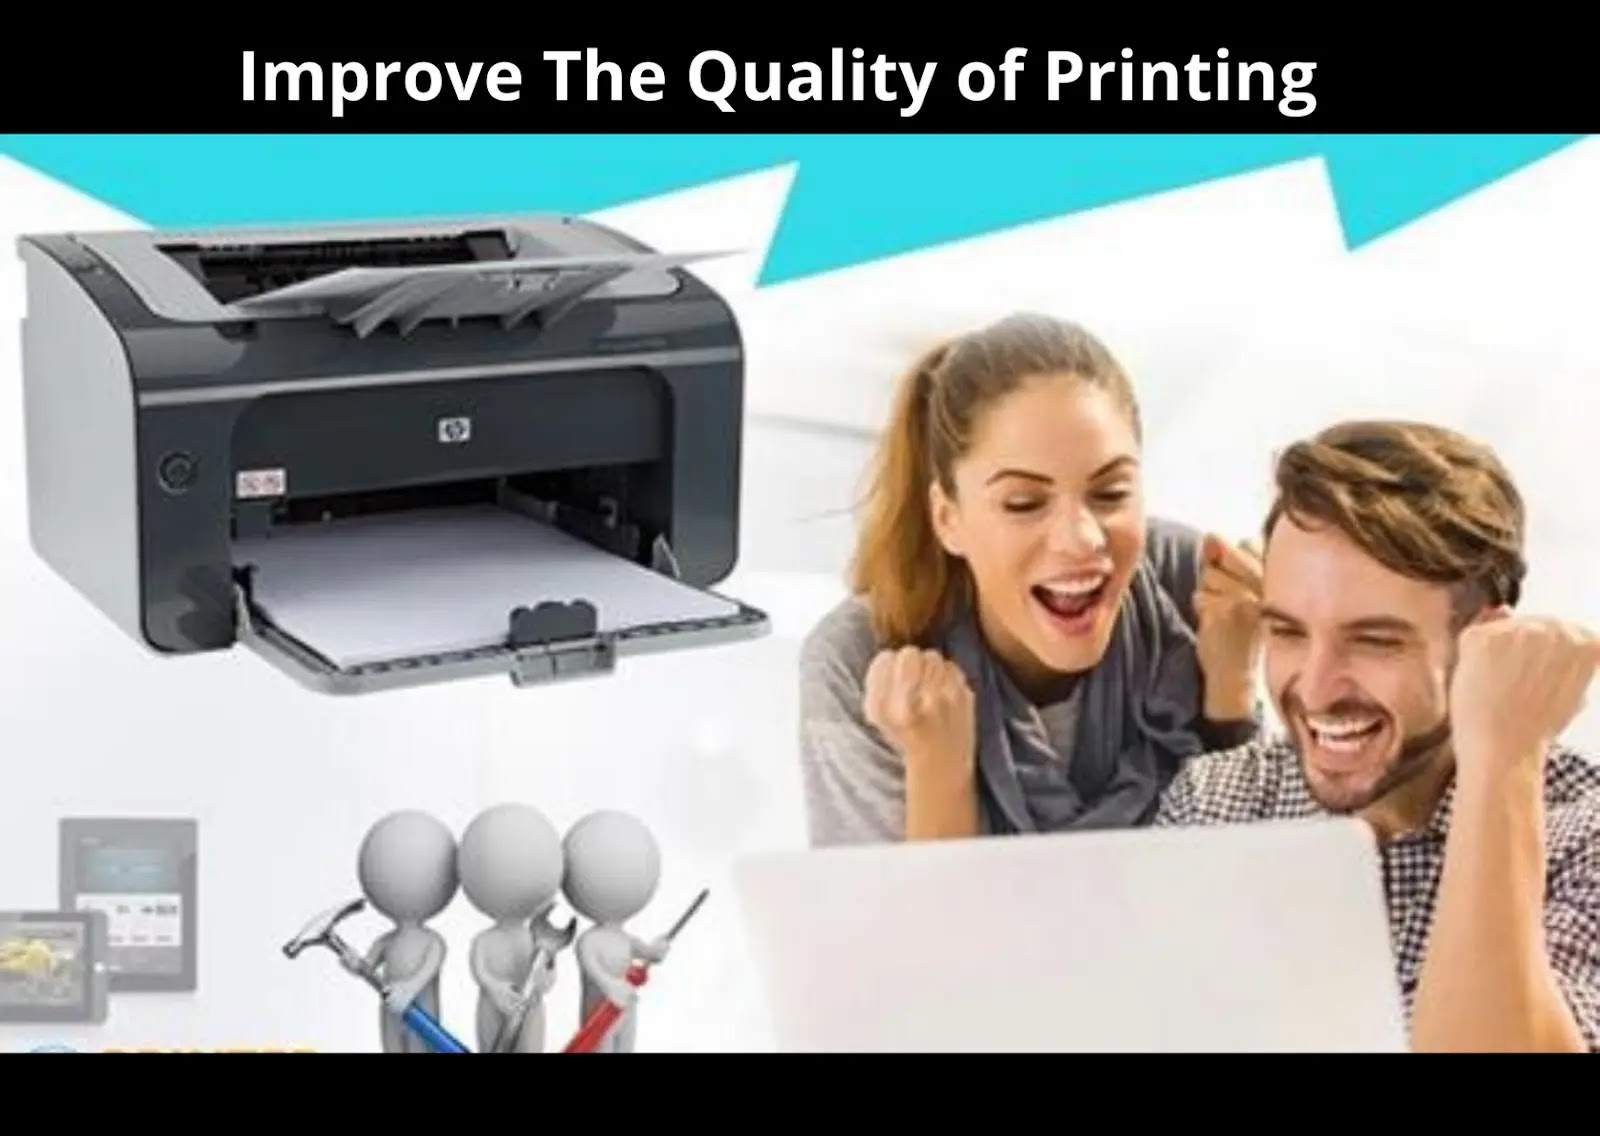 The Quality of Printing